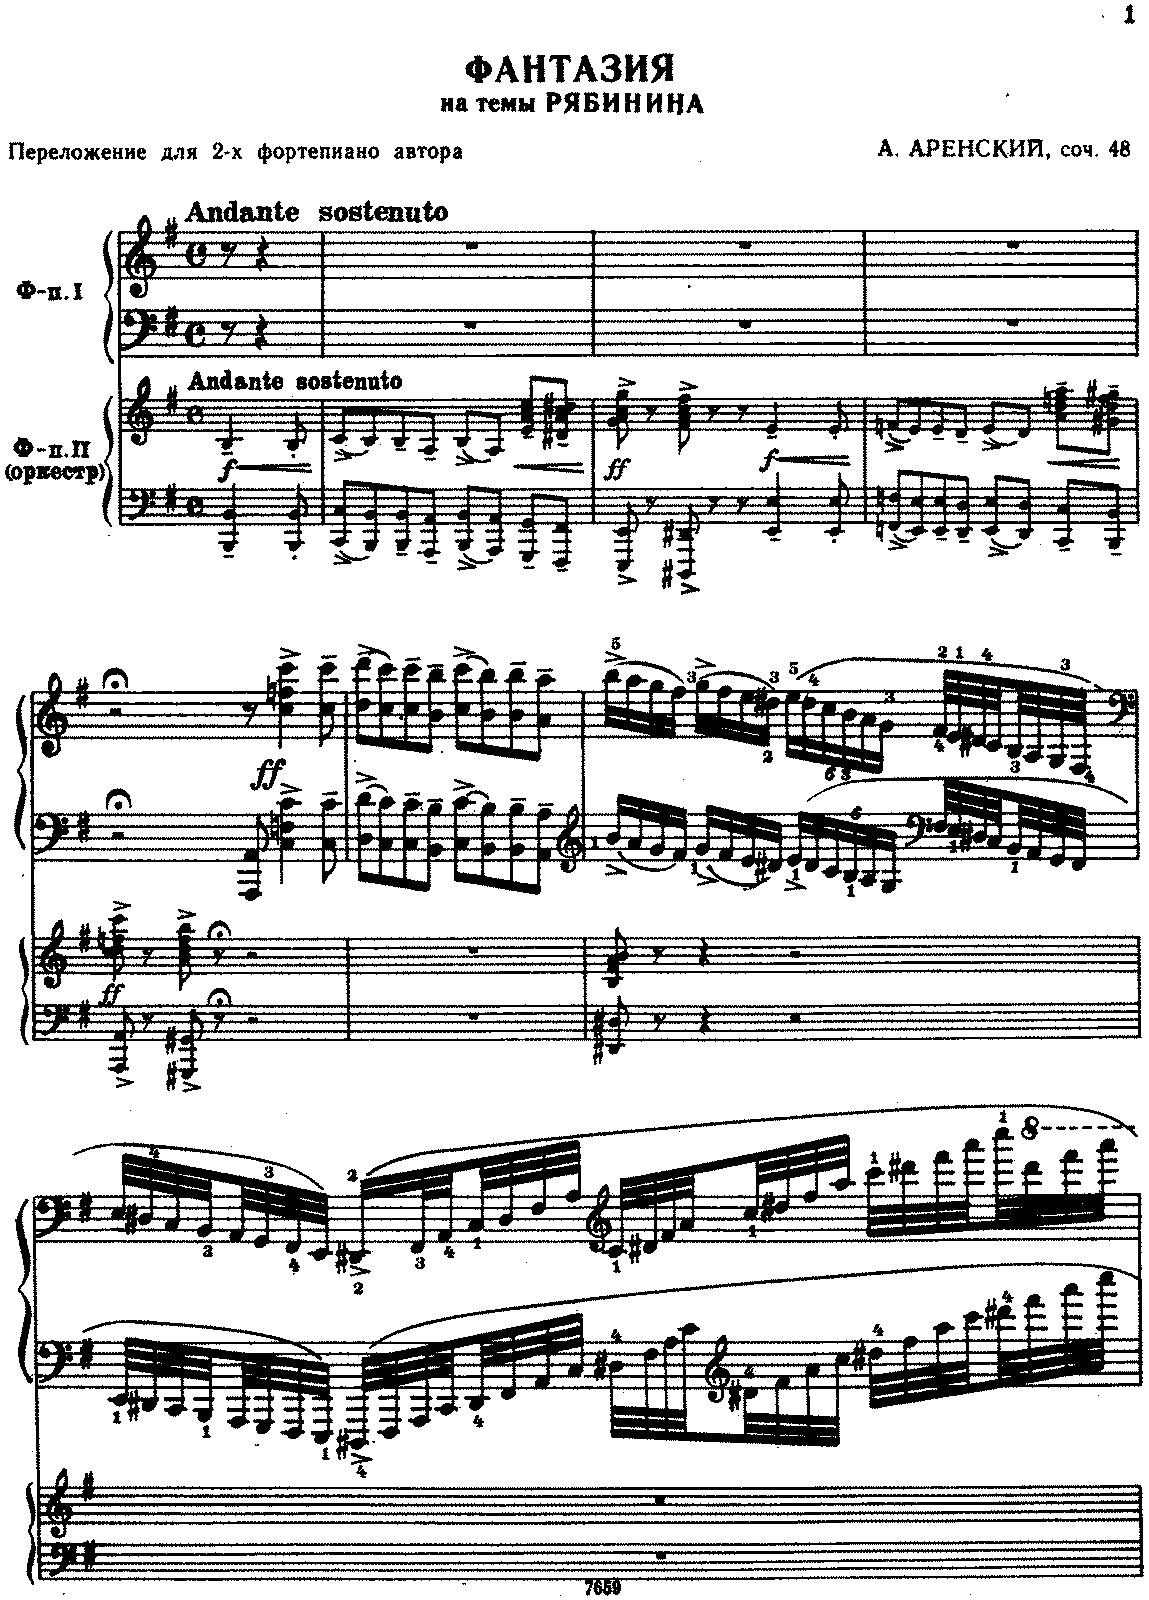 Arensky - Op.48 - Fantasia on a Russian Folk Song.pdf